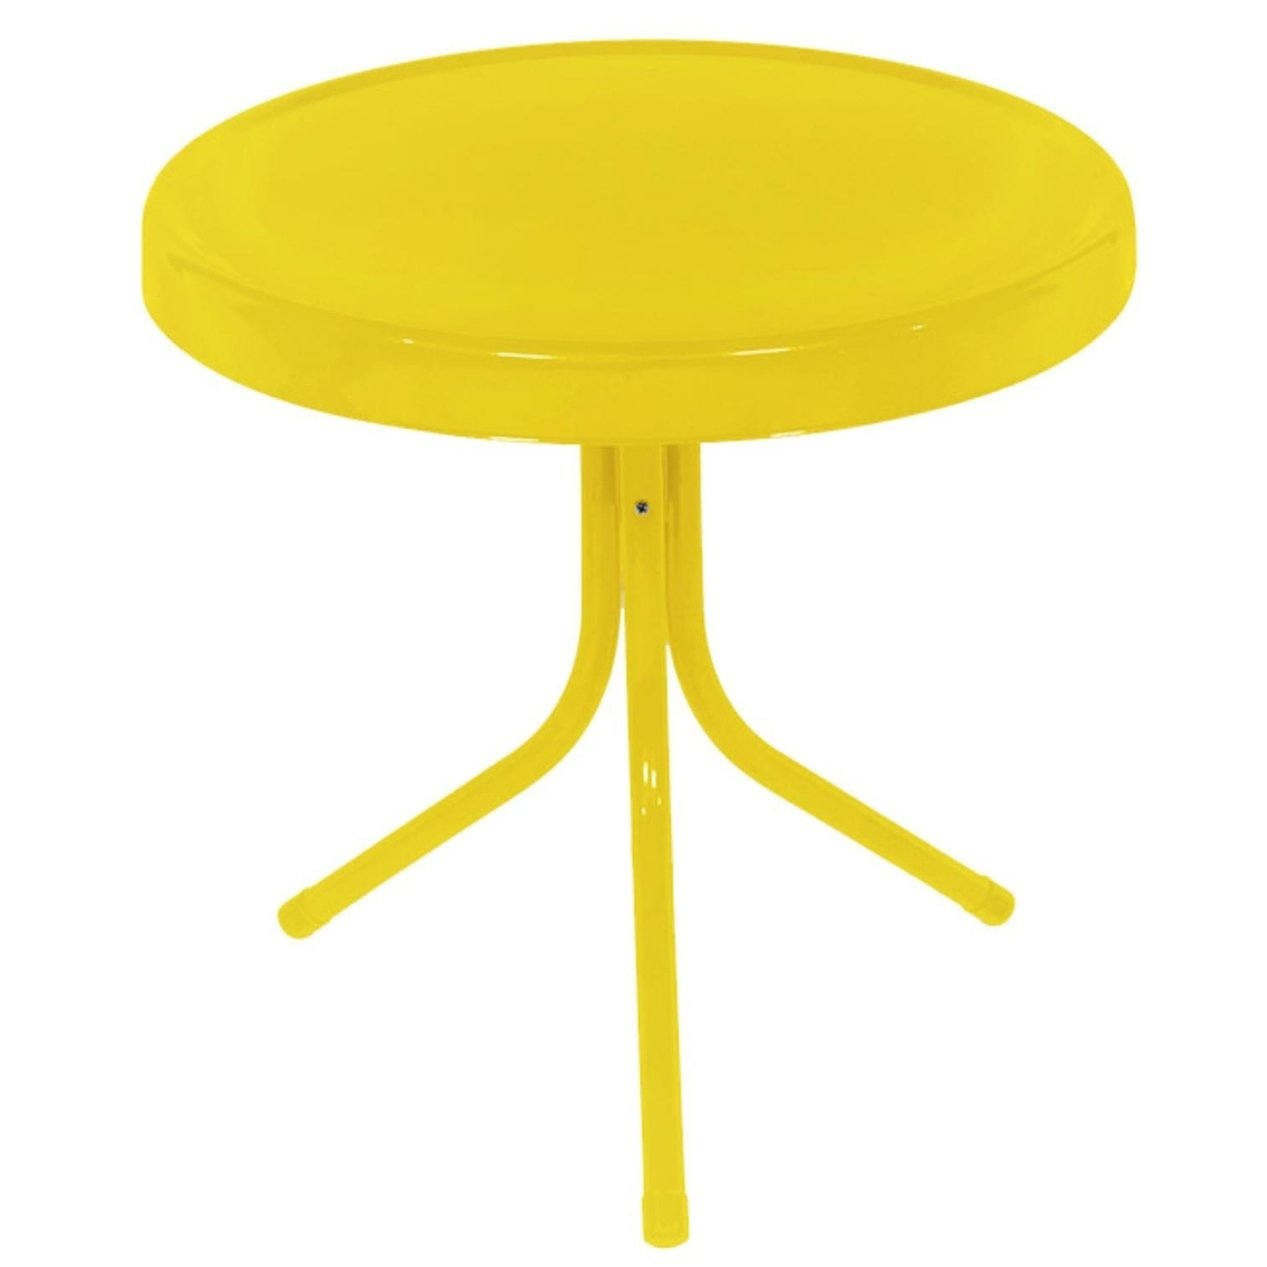 sunshine yellow retro metal tulip outdoor side table free accent shipping today oval glass top tall with storage battery desk light target desks and chairs pilgrim furniture